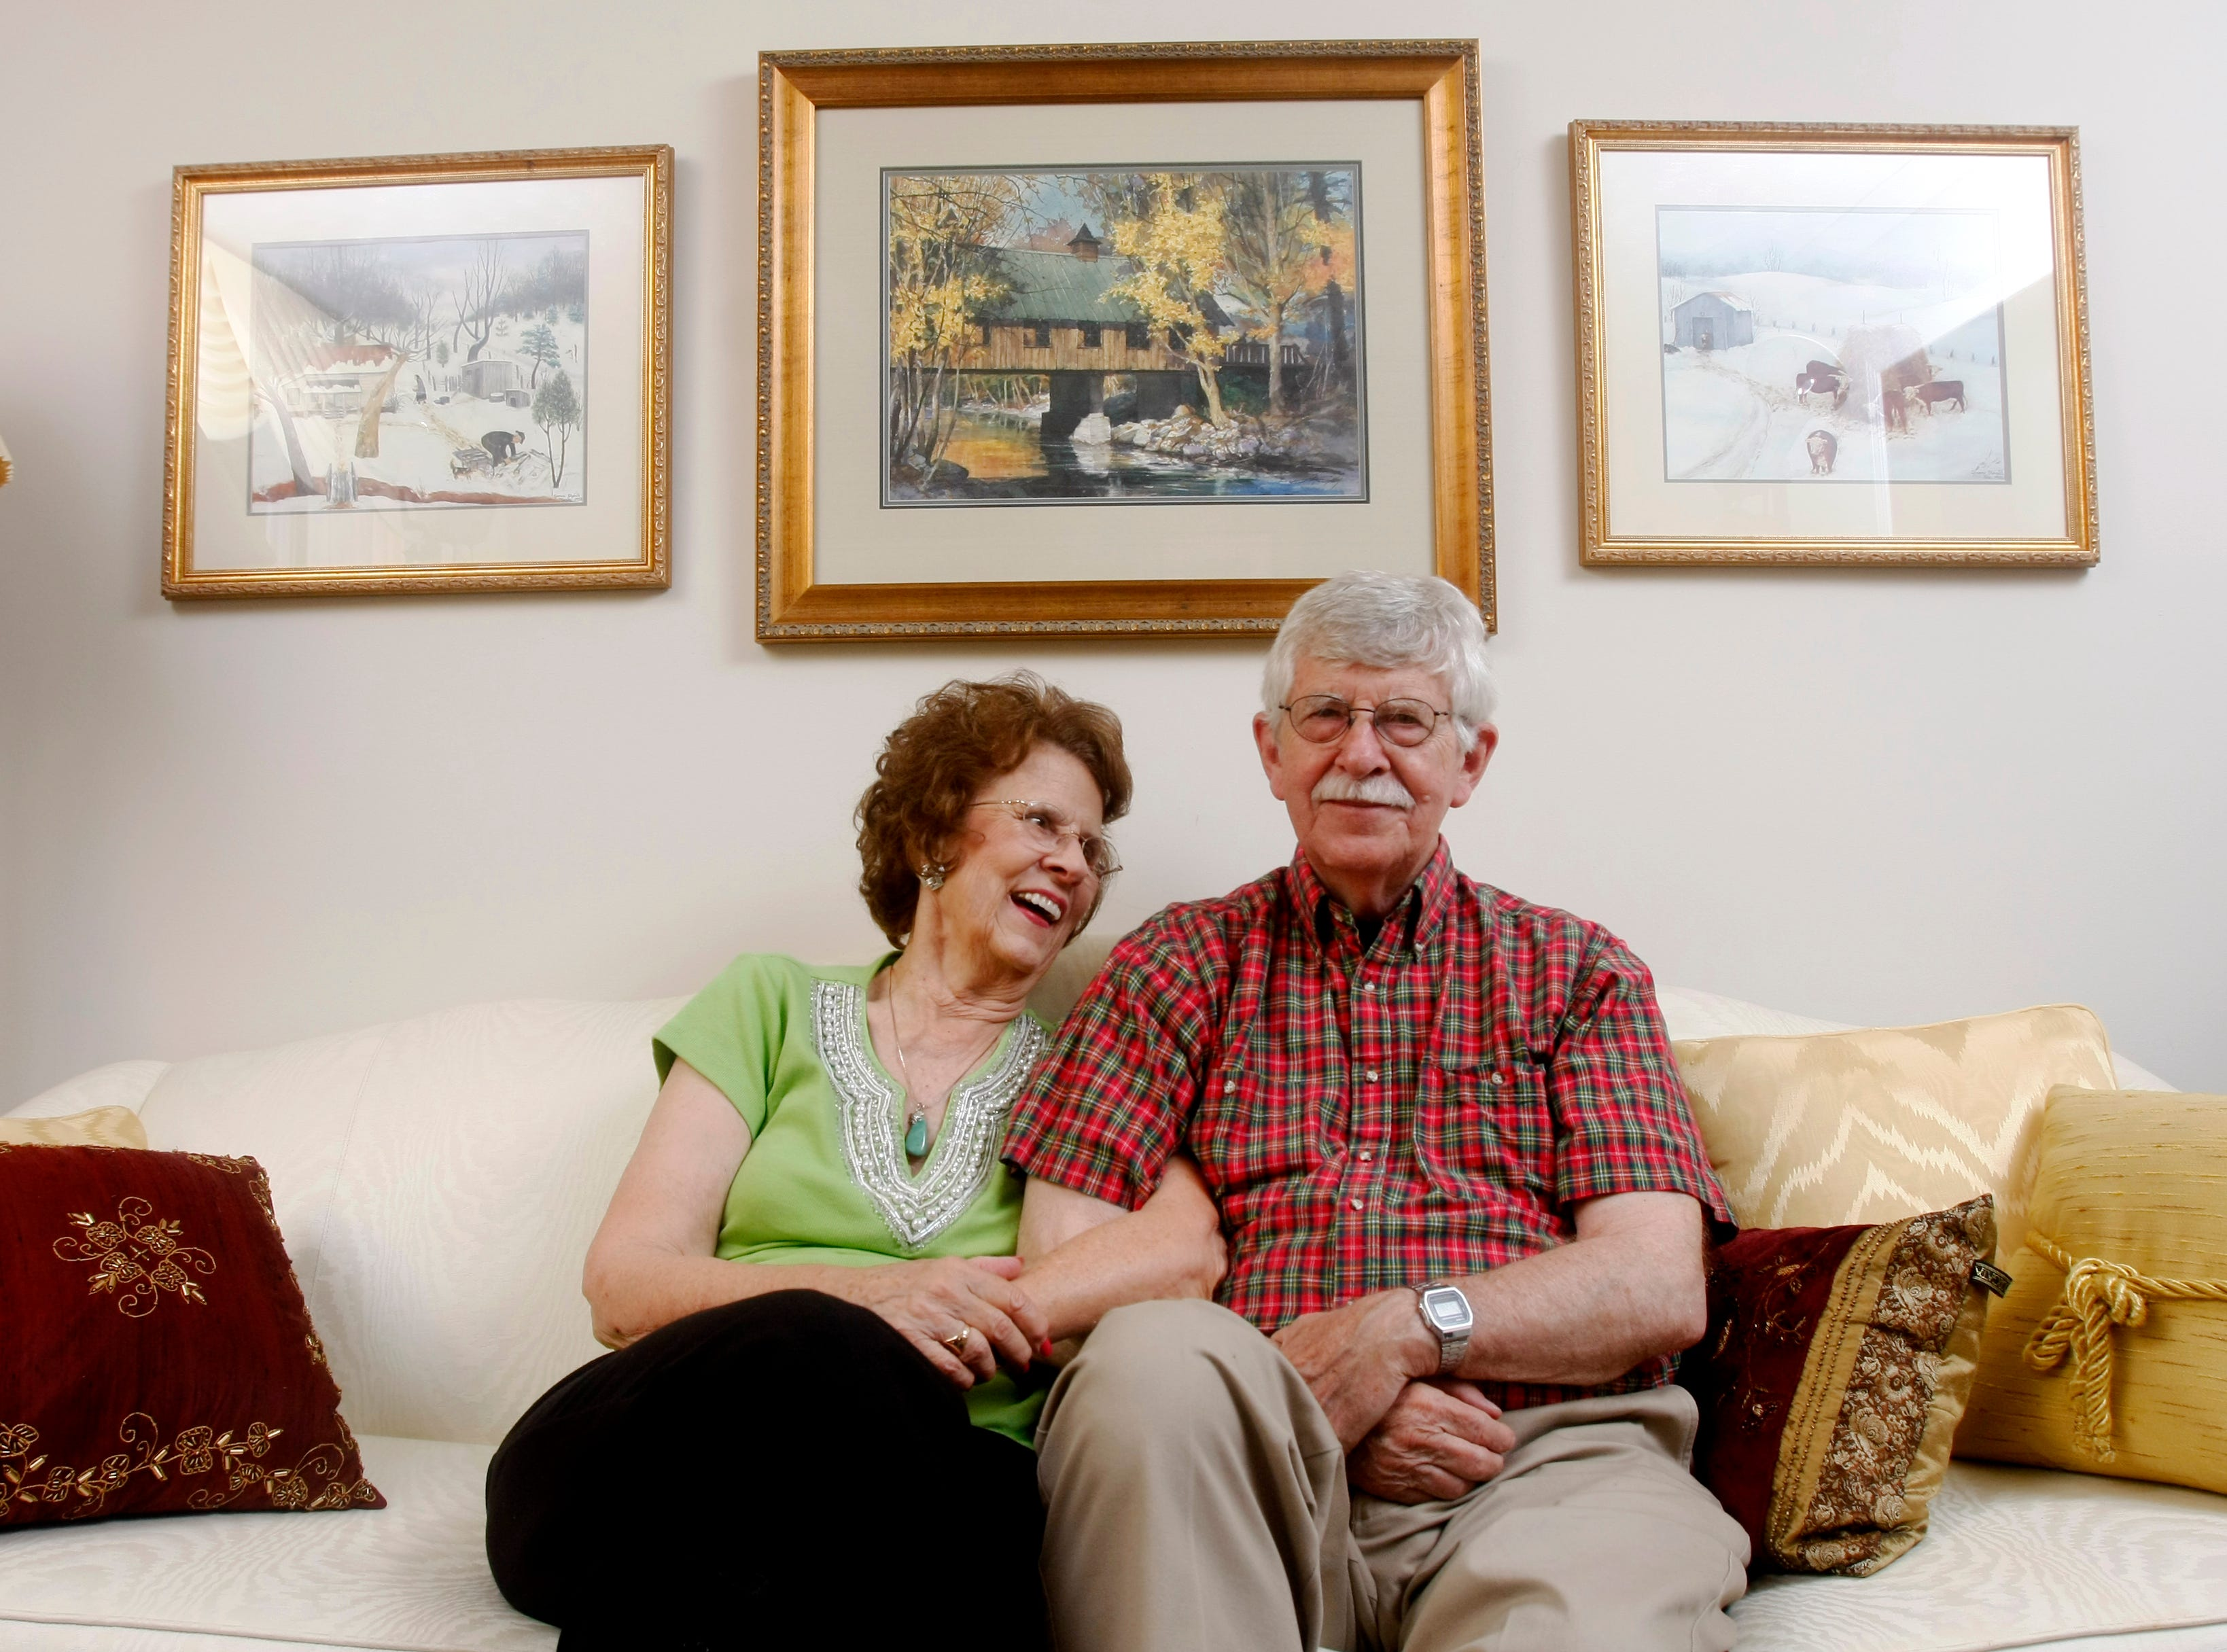 Patsy and Charlie Daniel sit together on the couch in their living room. Charlie and his wife moved to Knoxville 50 years ago for Charlie to take a job as a cartoonist for The Knoxville Journal.  The couple have been married for 54 years. Thursday, July 3, 2008